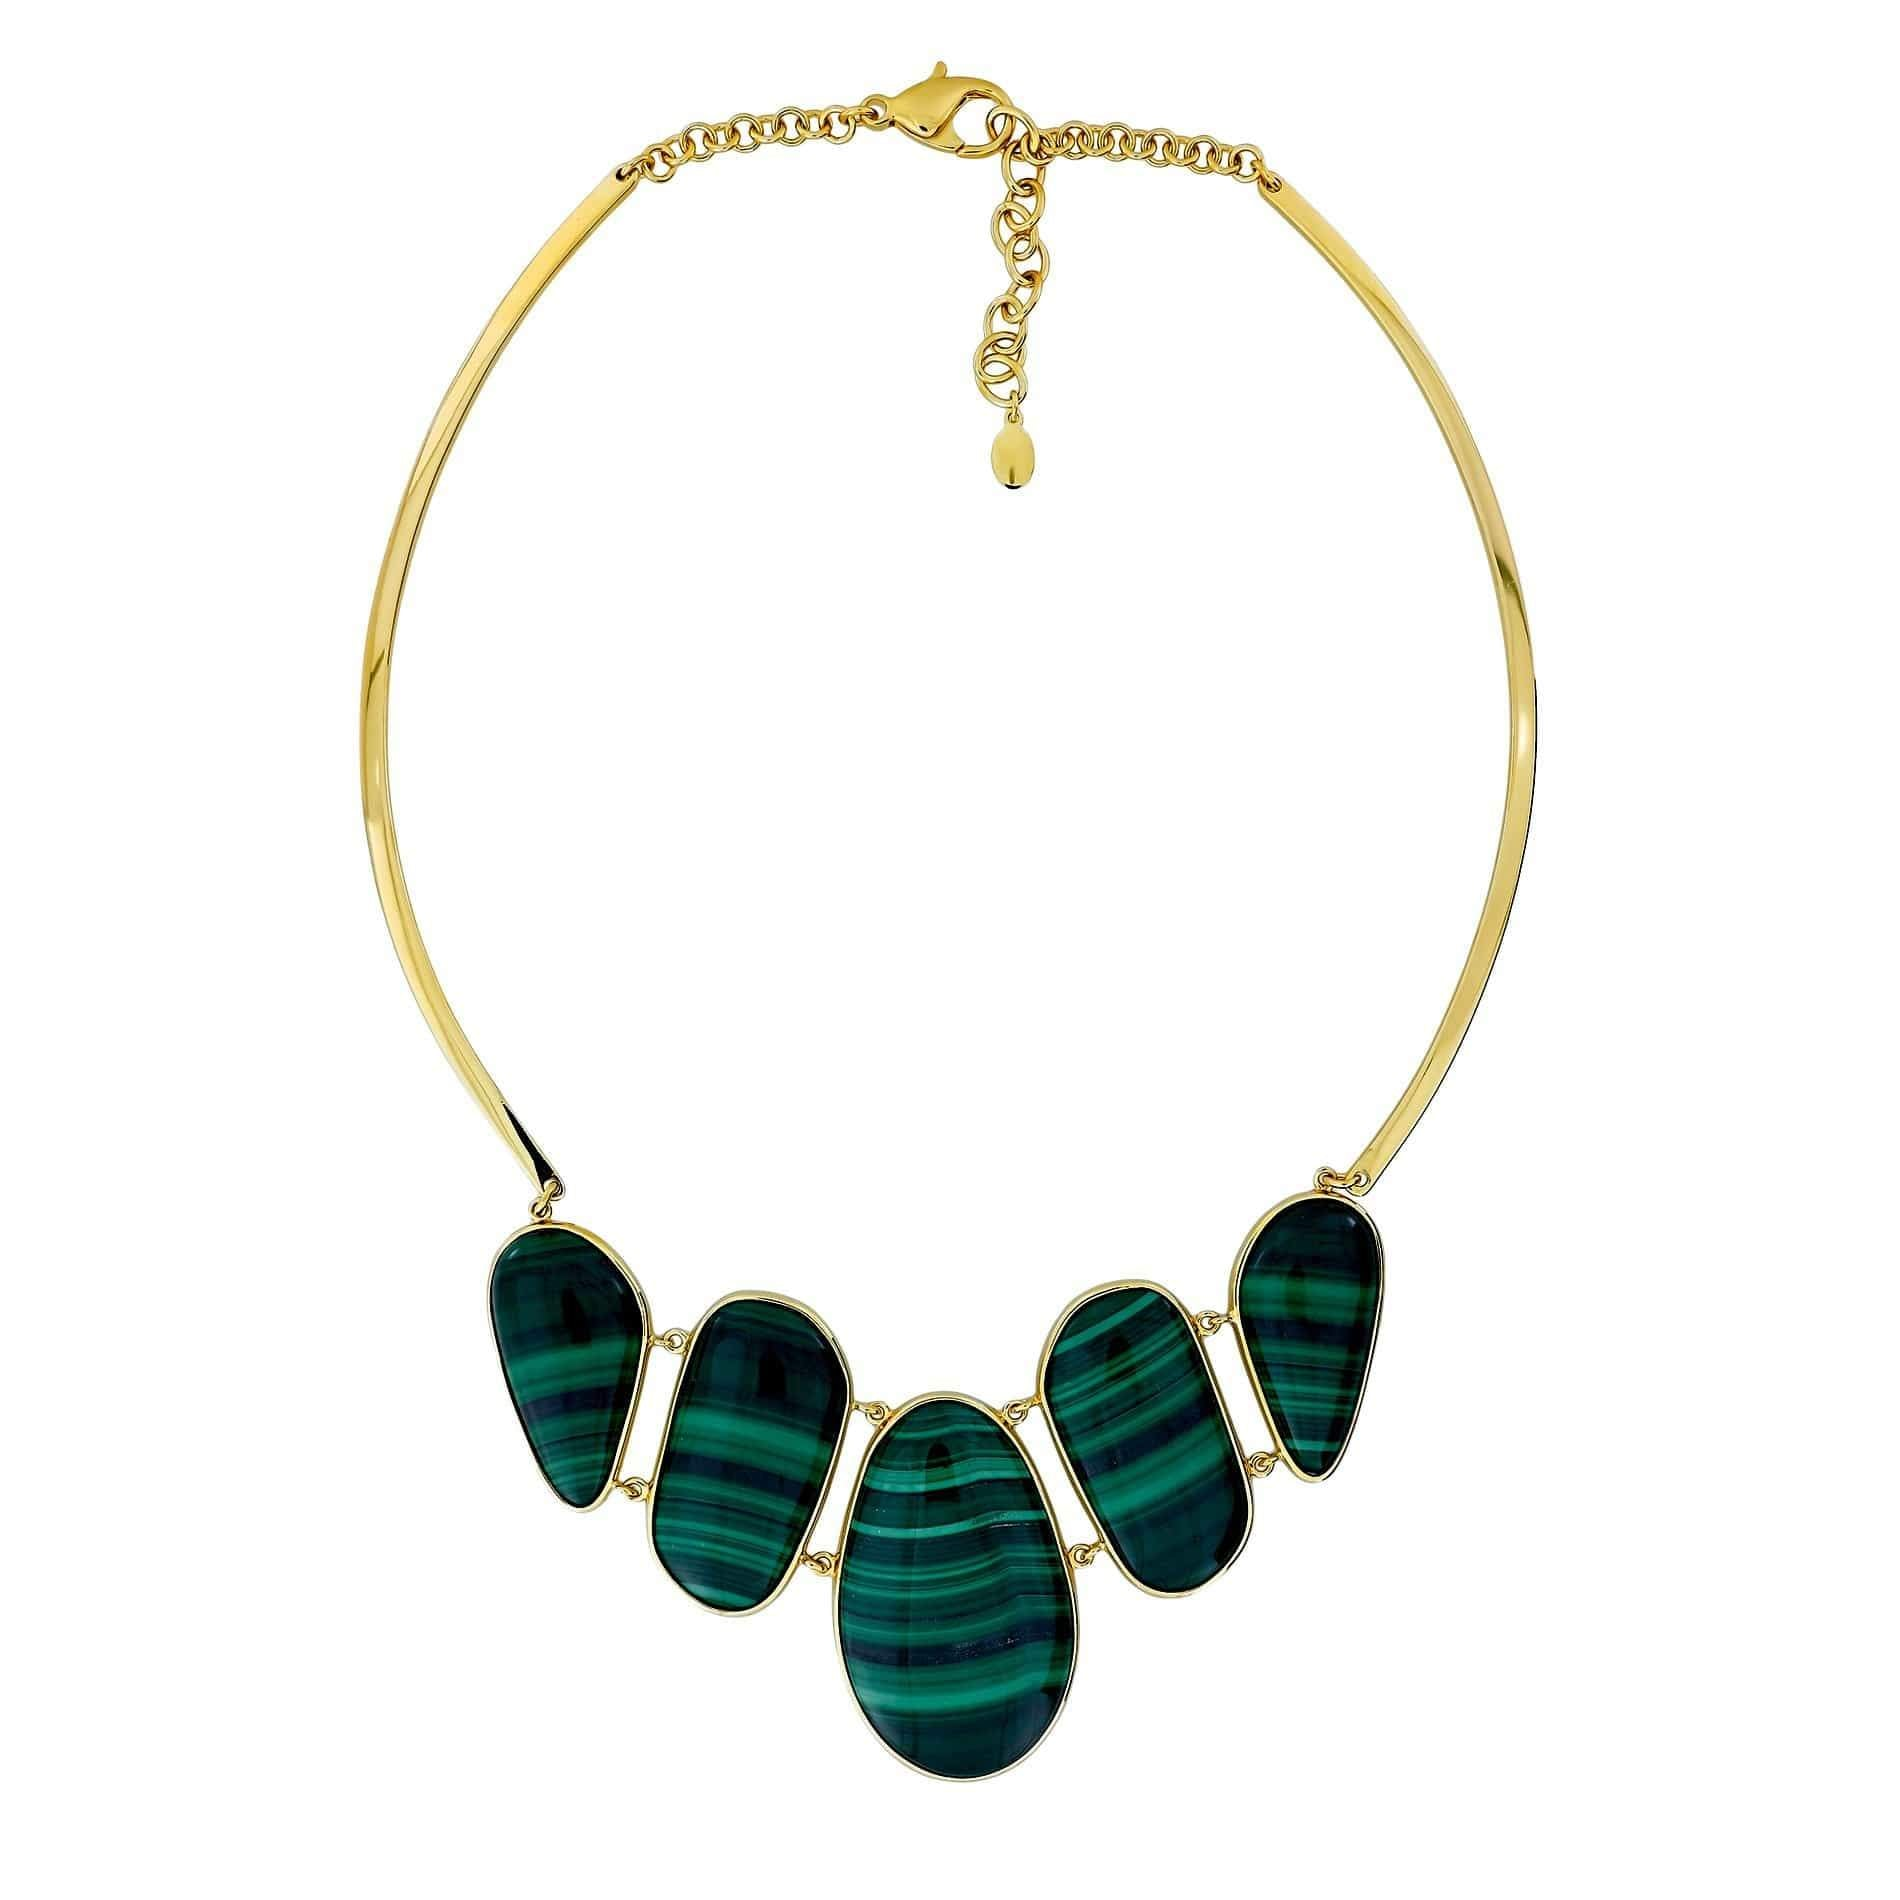 18CT Gold Vermeil Malachite Avalon Statement Necklace